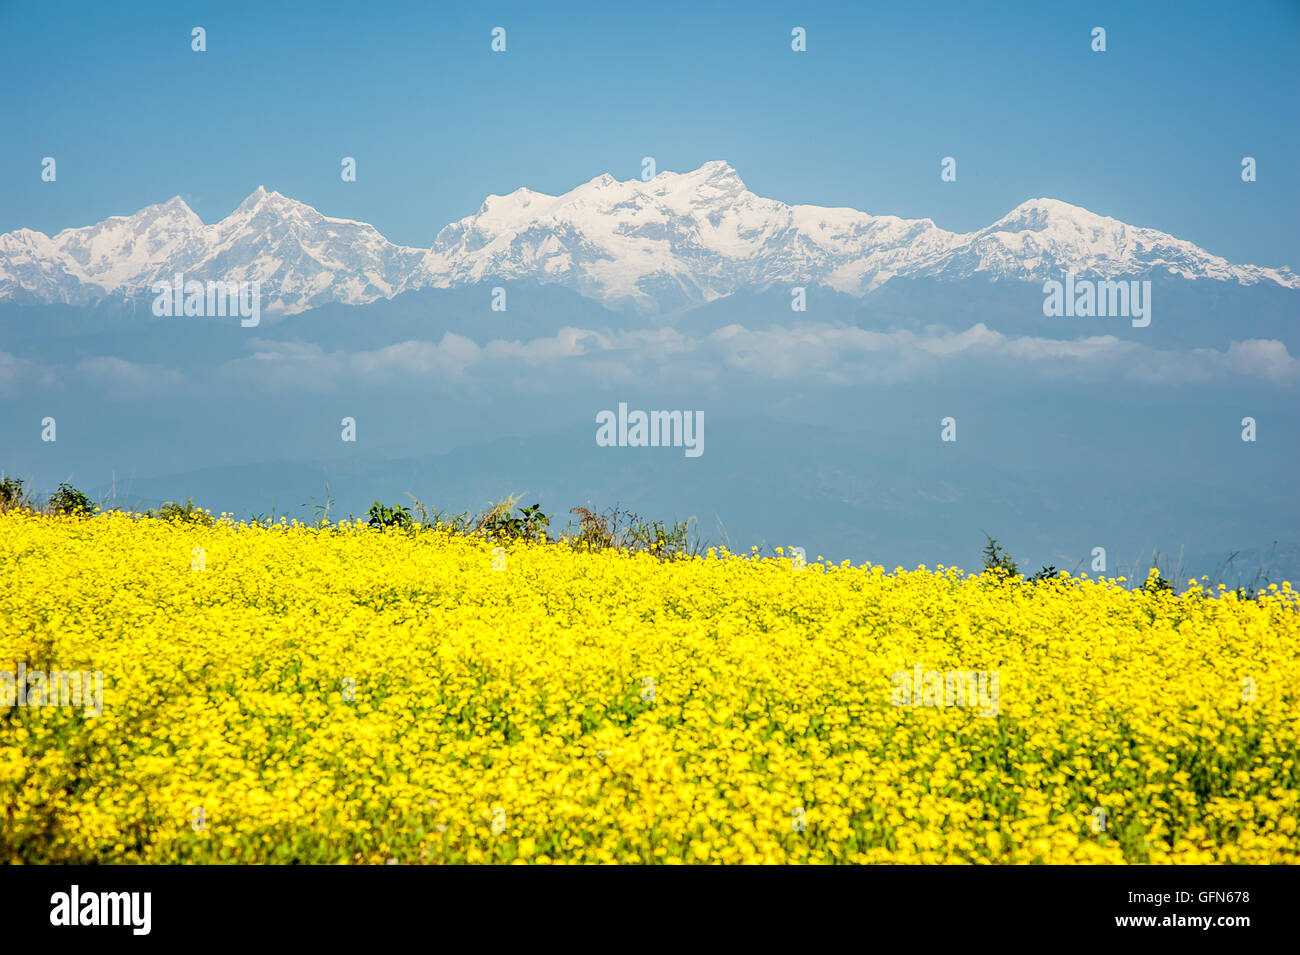 View of Himalayas skyline from Bandipur - Stock Image